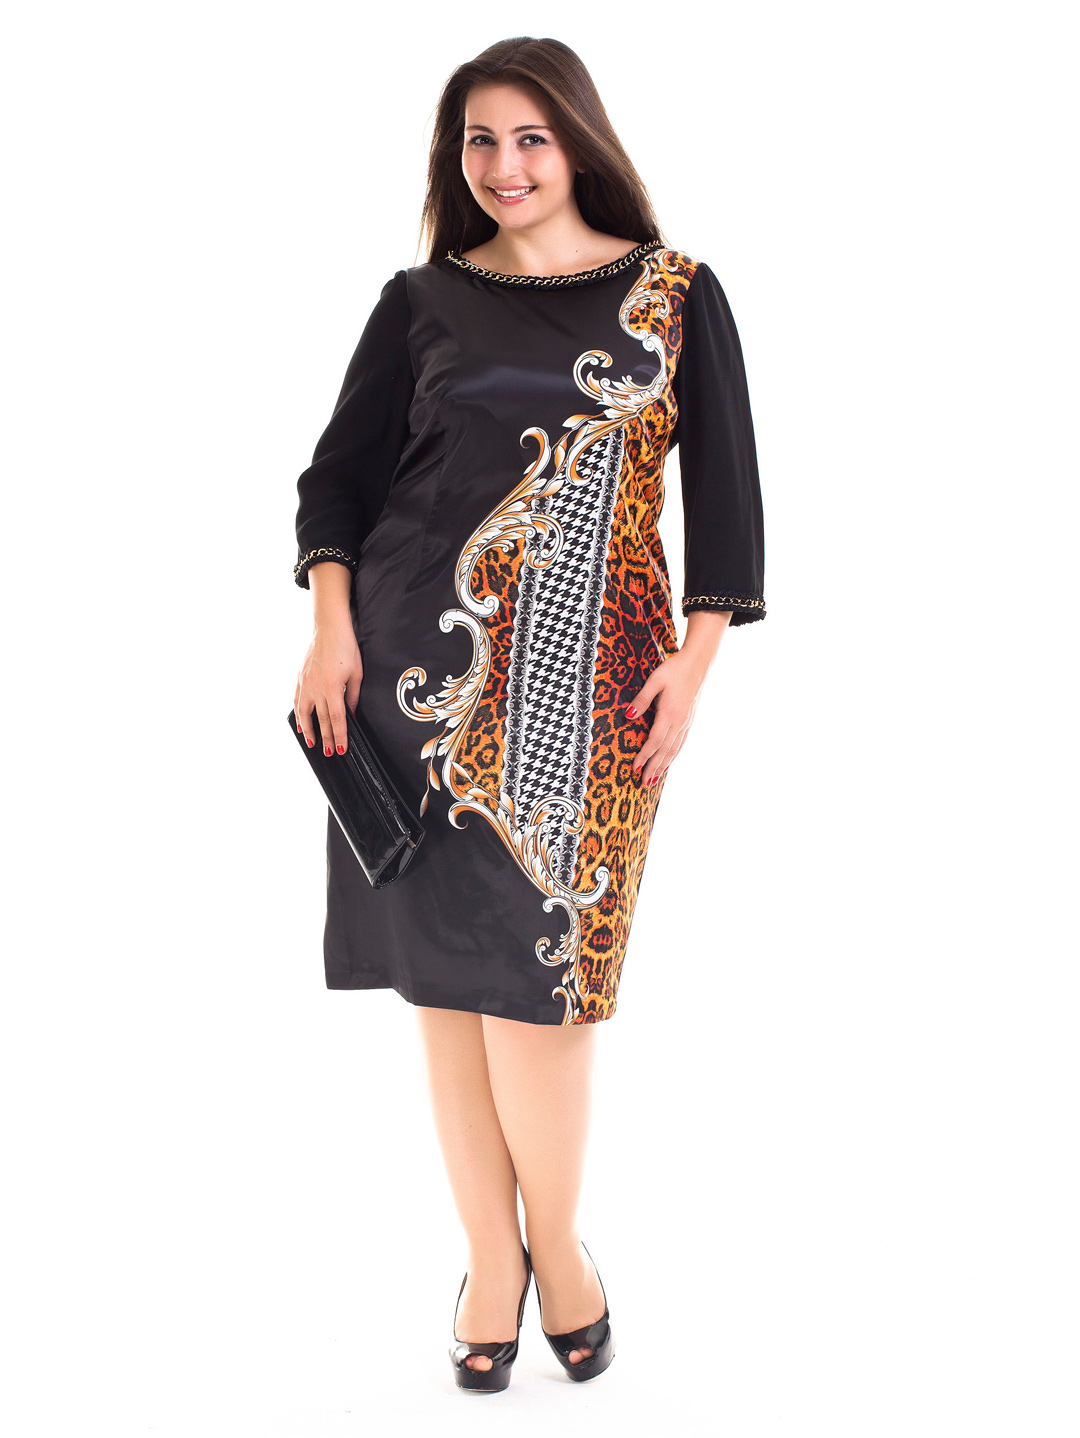 Enjoy free shipping and easy returns every day at Kohl's. Find great deals on Plus Size Party Dresses at Kohl's today!